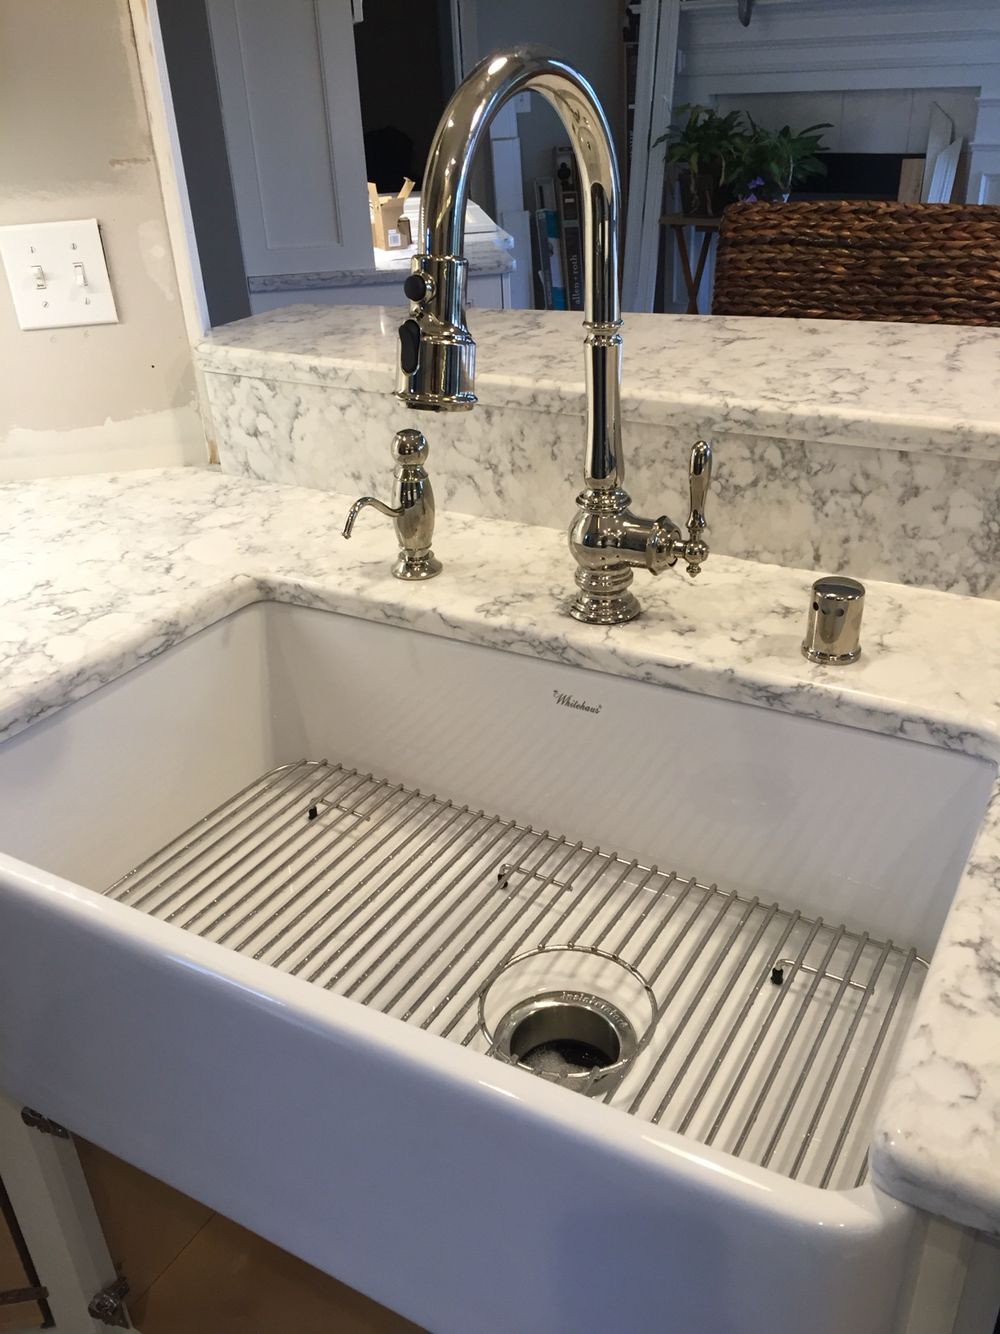 Kohler Artifacts Faucet W/ Whitehaus Farmhouse Sink